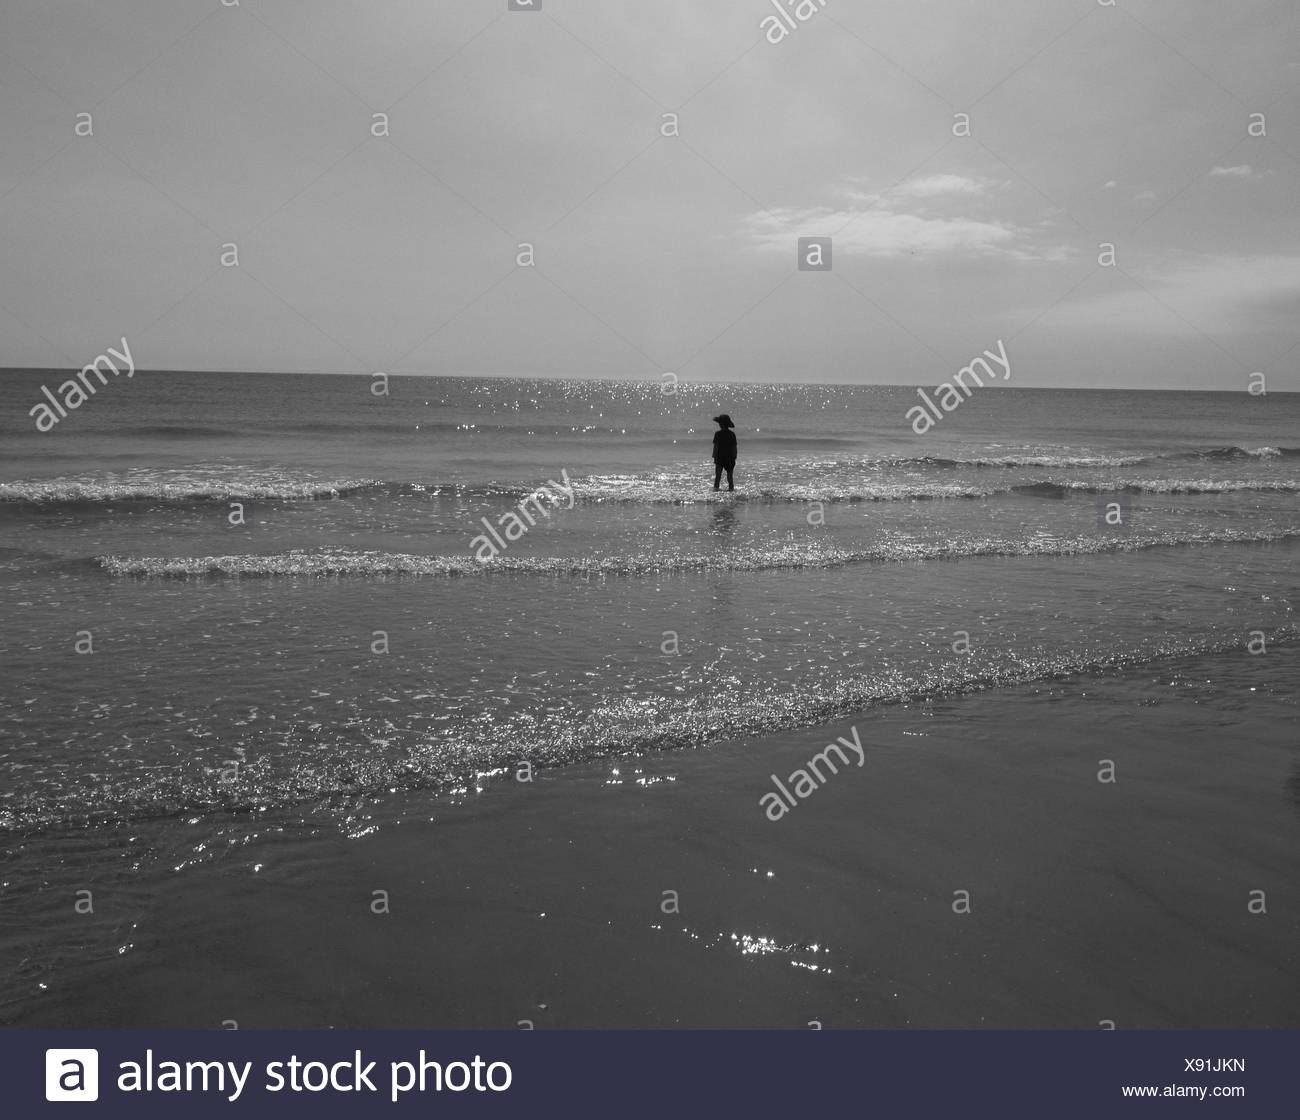 P4Rson Standing Ankle-Deep In Water On Sea Shore - Stock Image